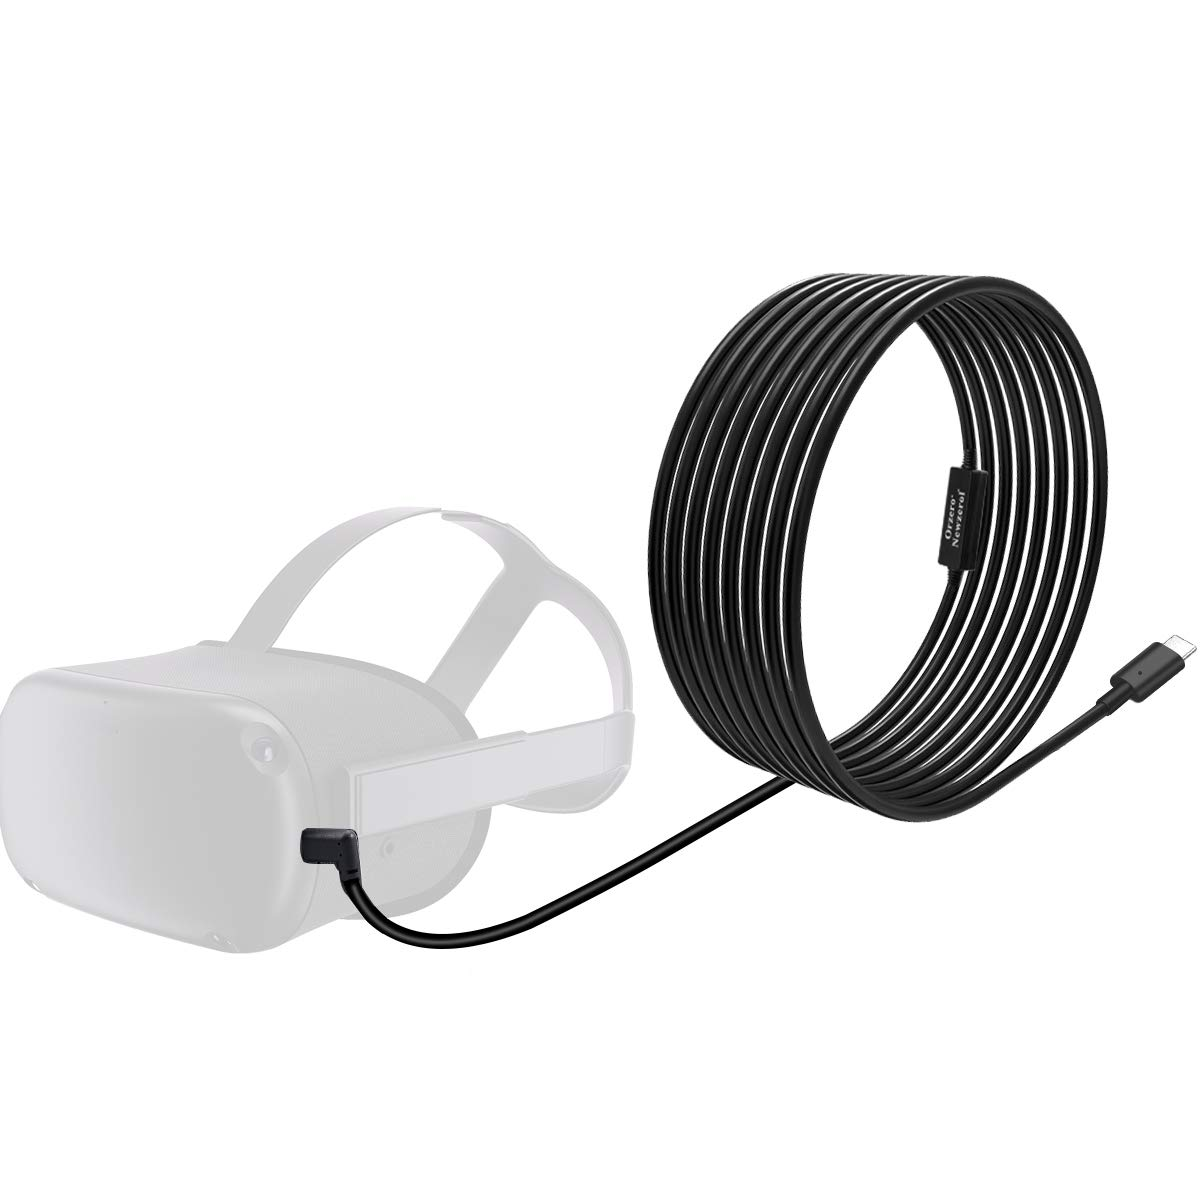 Orzero Total 6M / 20Ft Type C Stable Data Cable Compatible for Oculus Quest Link Steam VR, Extension Cable with Relay Amplifier Chip and USB 3.2 Gen 1 Cable(Cable Only)